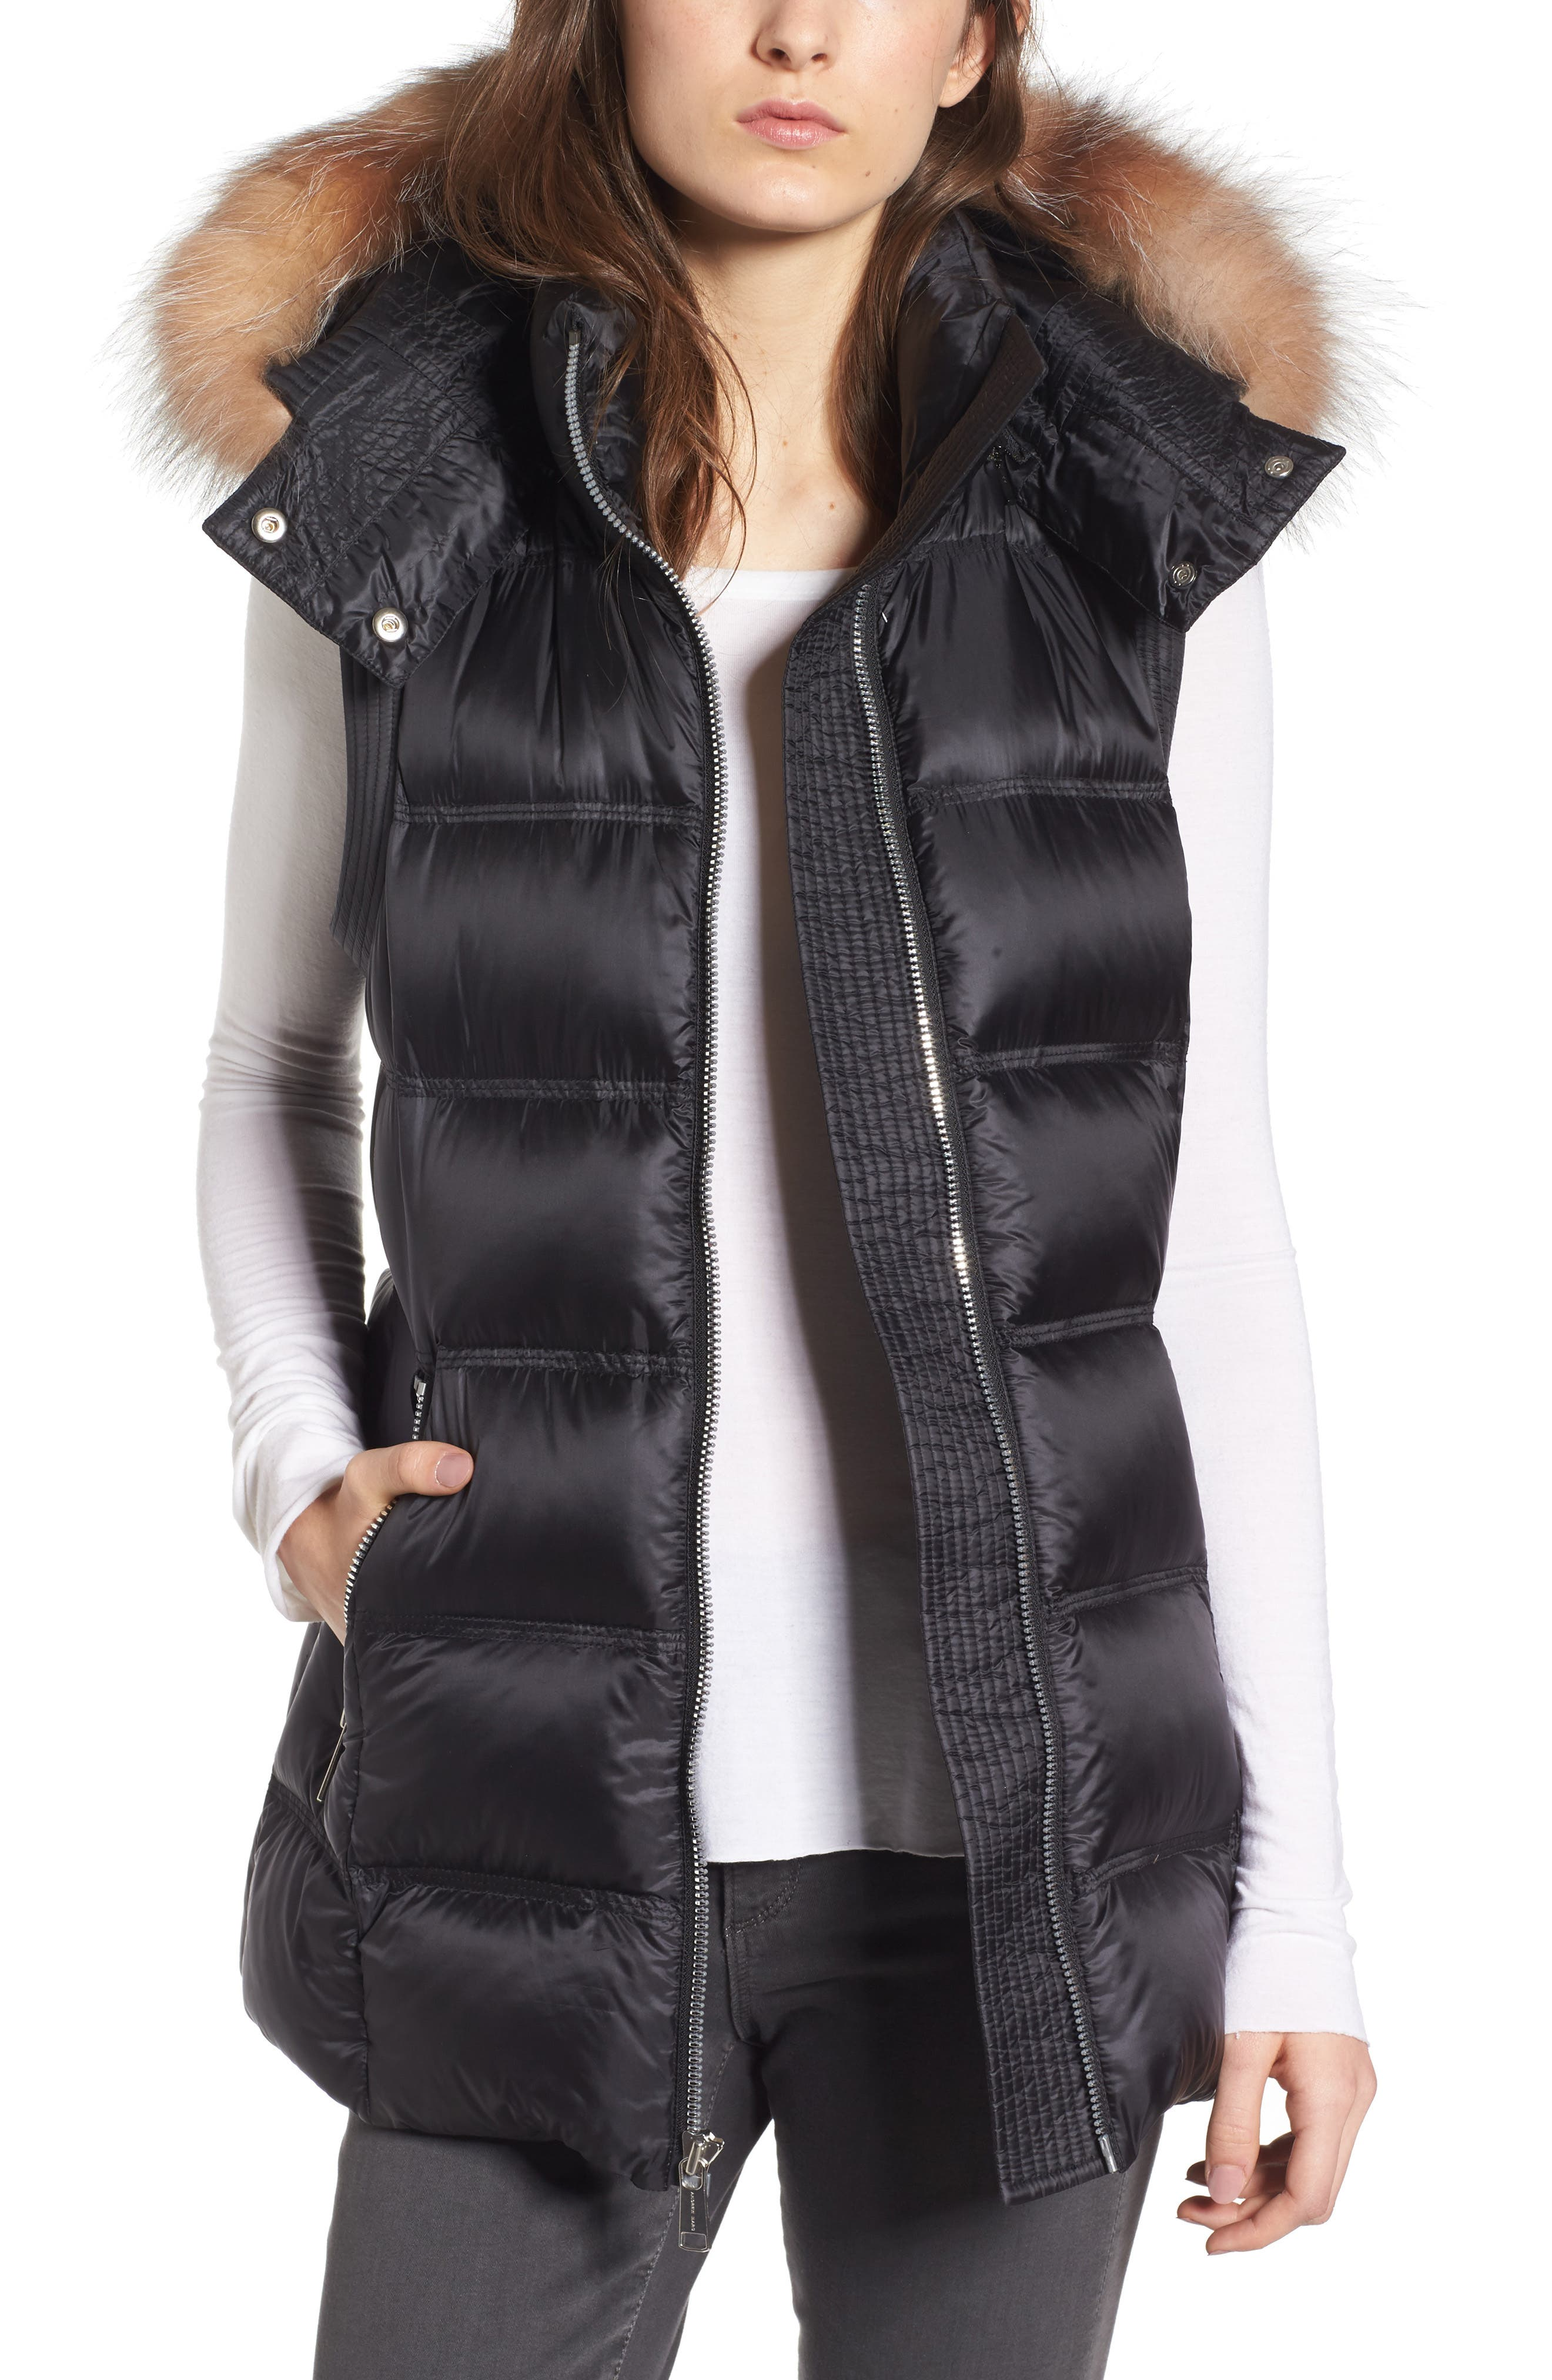 Cambridge Genuine Rabbit Fur & Leather Jacket,                             Main thumbnail 1, color,                             001